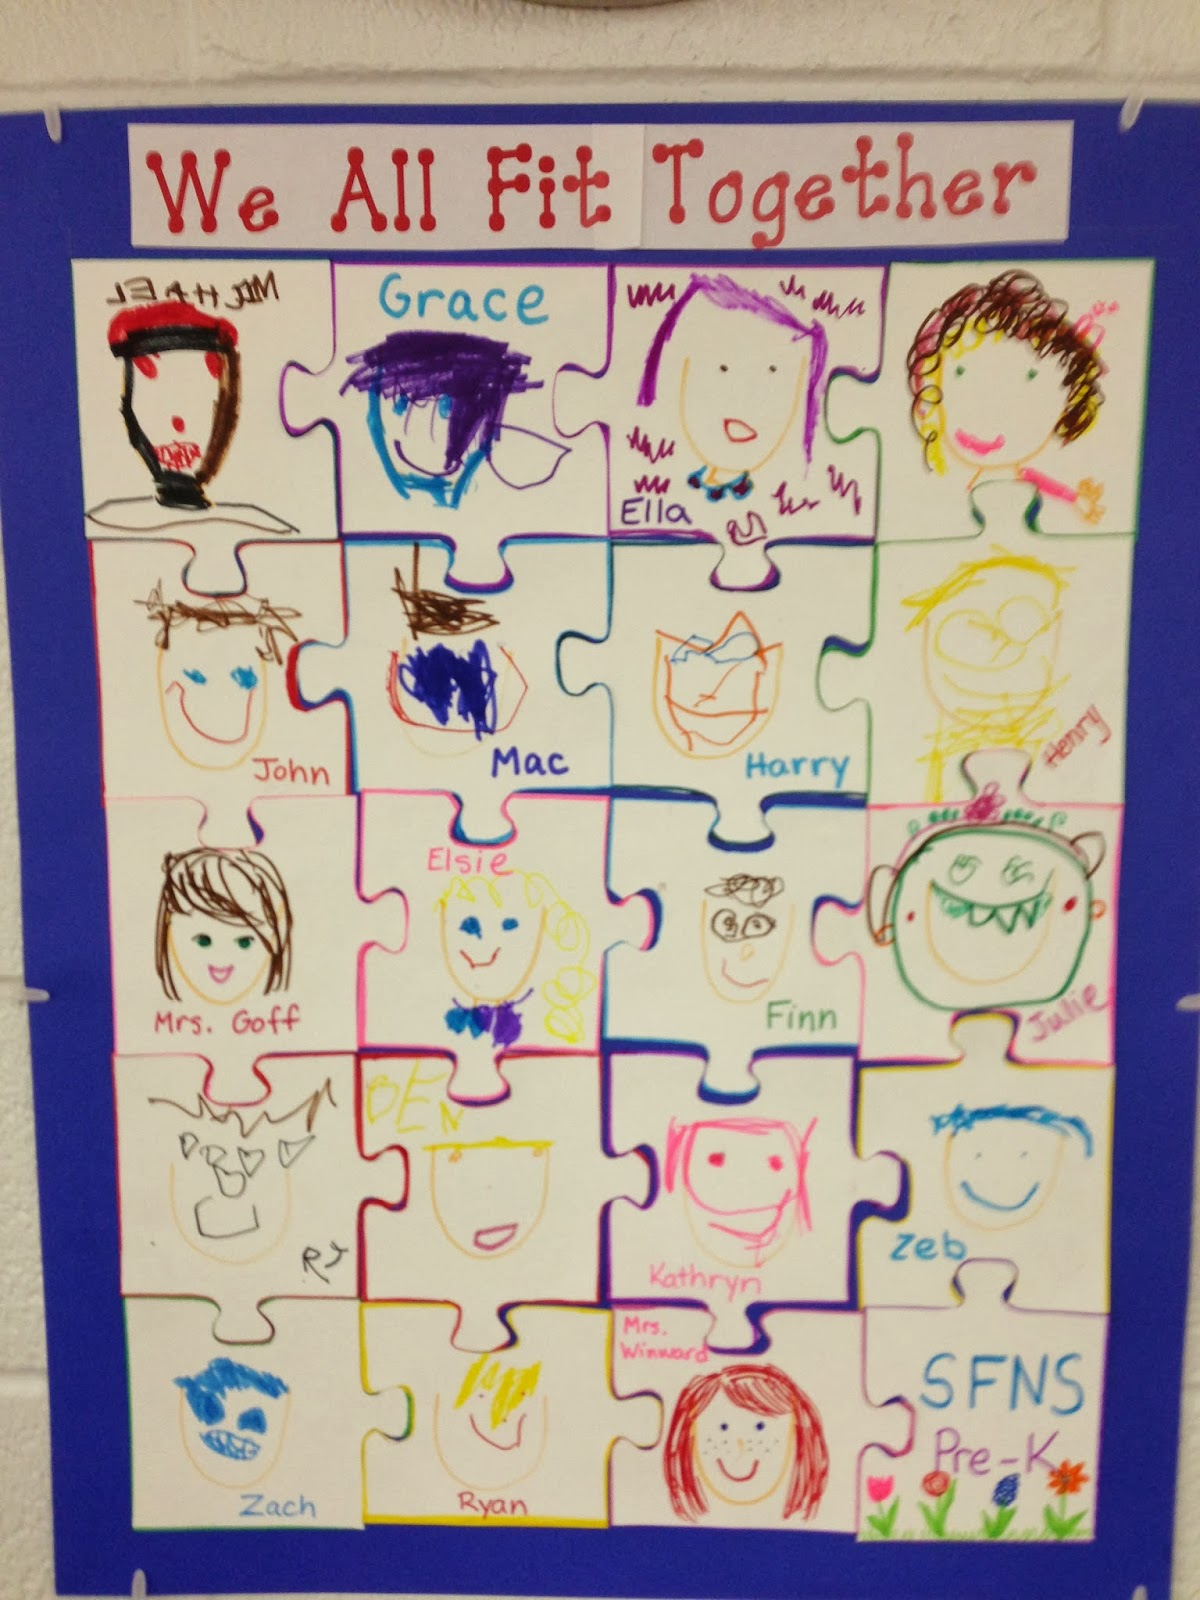 Get All As: Mrs. Goff's Pre-K Tales: Thanks To My Blogging Buddies For